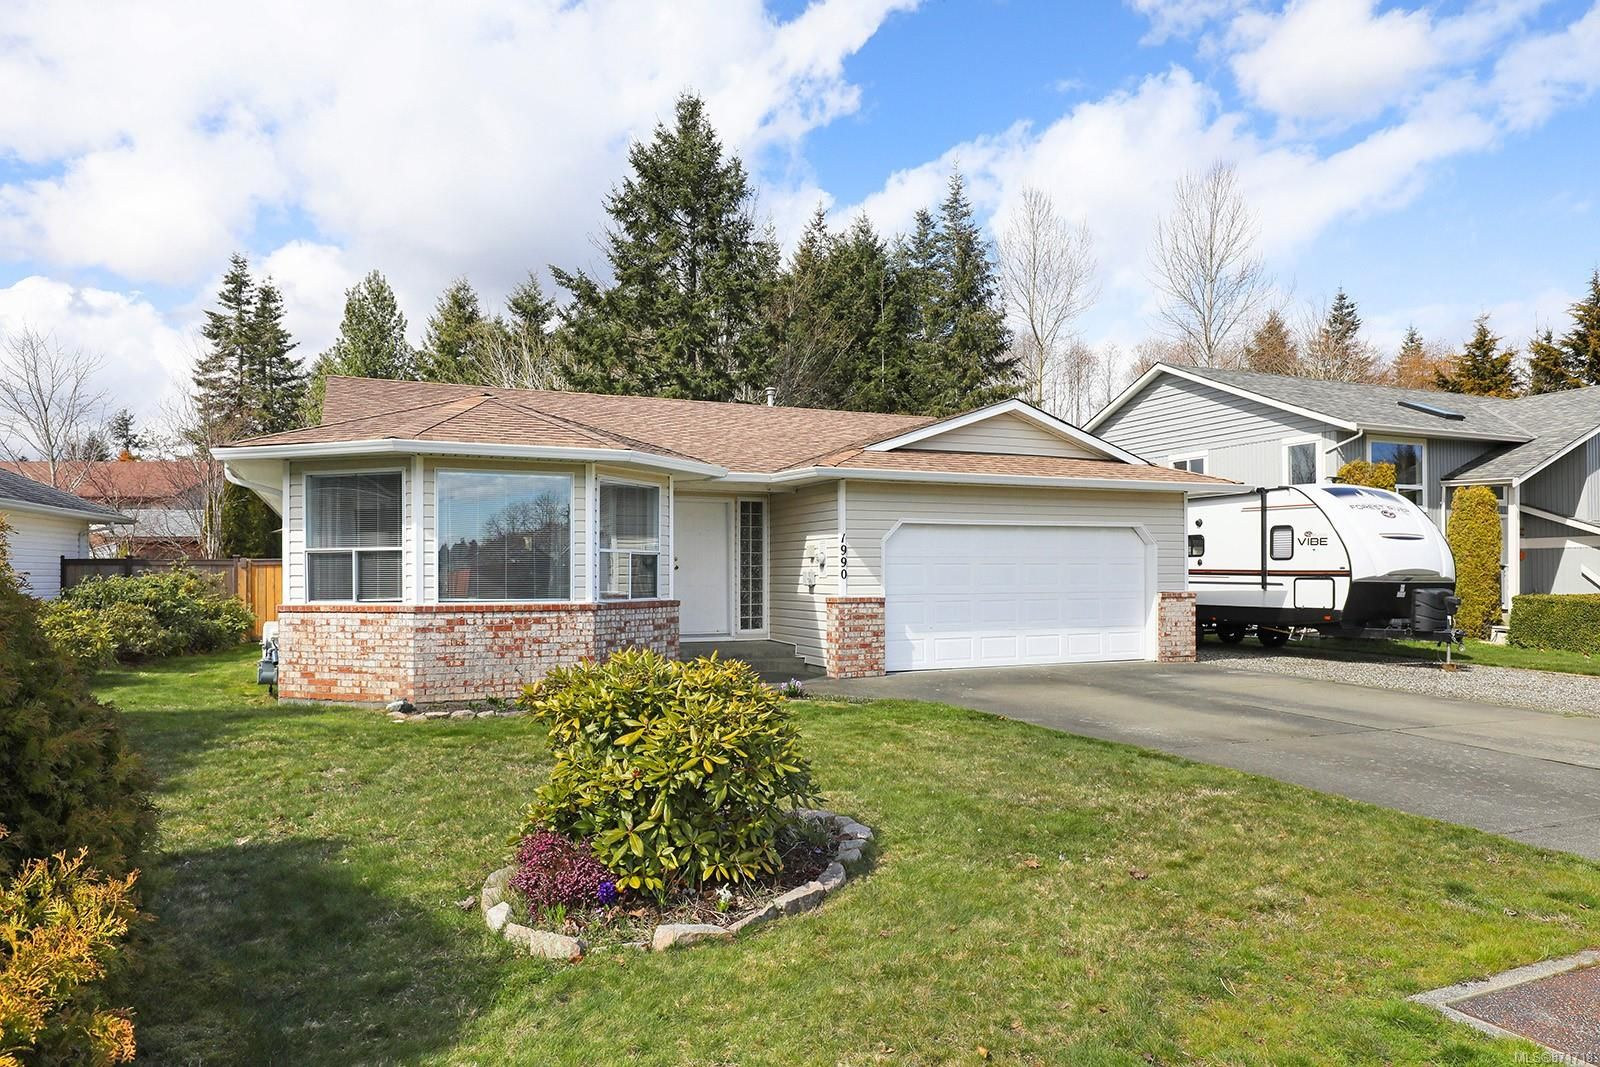 Main Photo: 1990 Valley View Dr in : CV Courtenay East House for sale (Comox Valley)  : MLS®# 871718